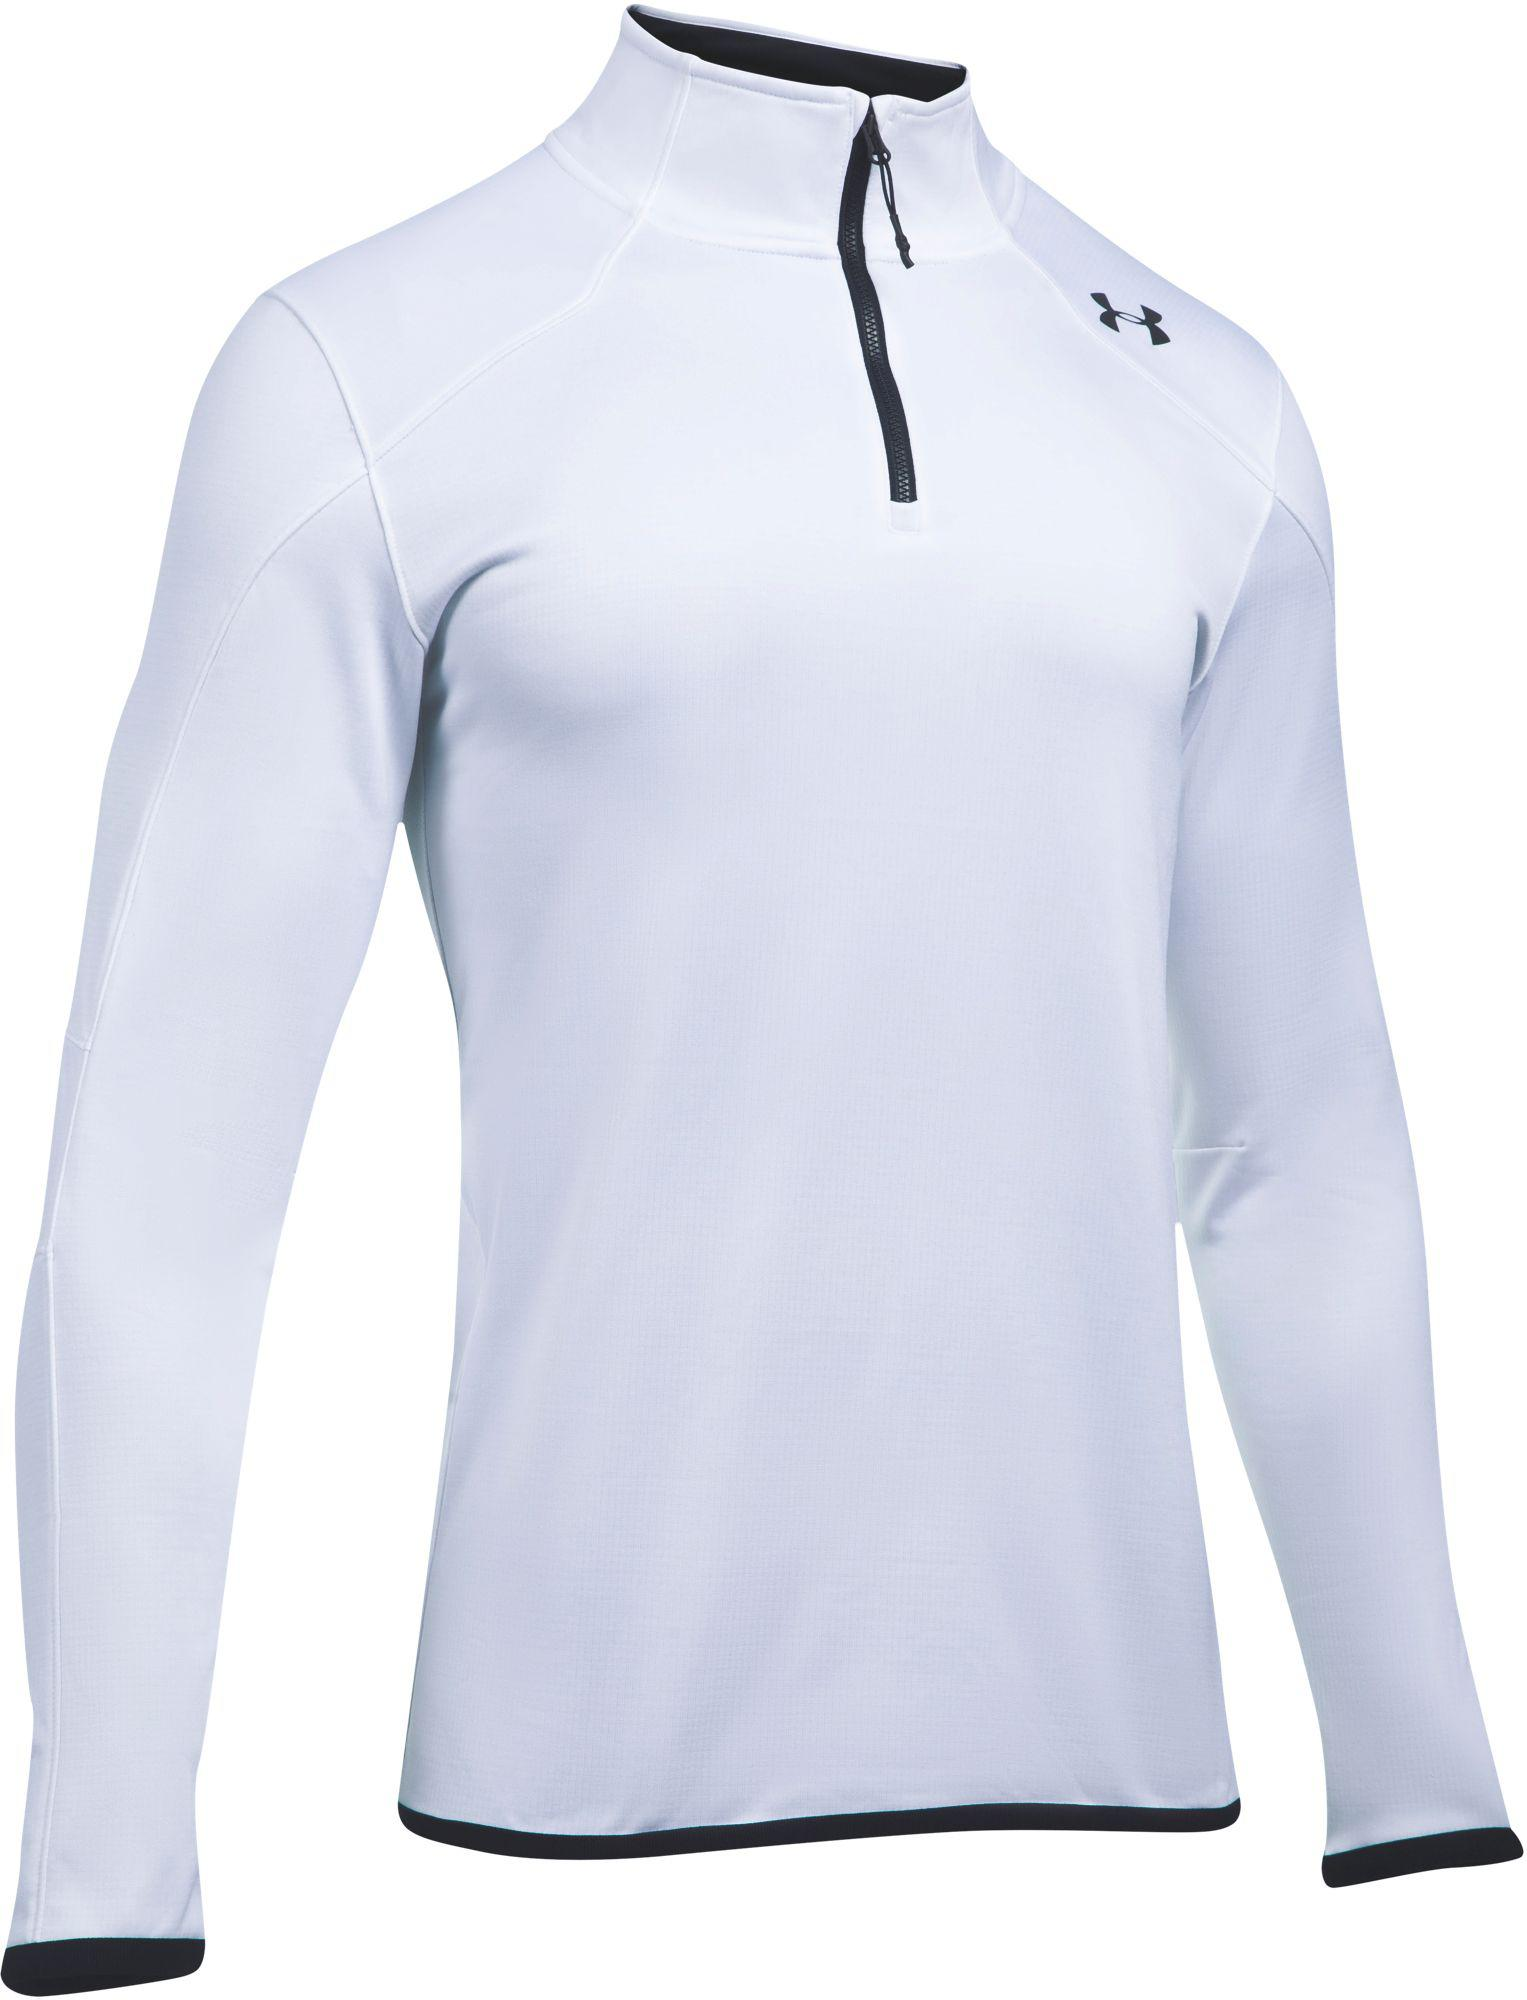 c2c9fb50 Under Armour Coldgear Reactor 1/4 Zip Long Sleeve T-shirt in White ...